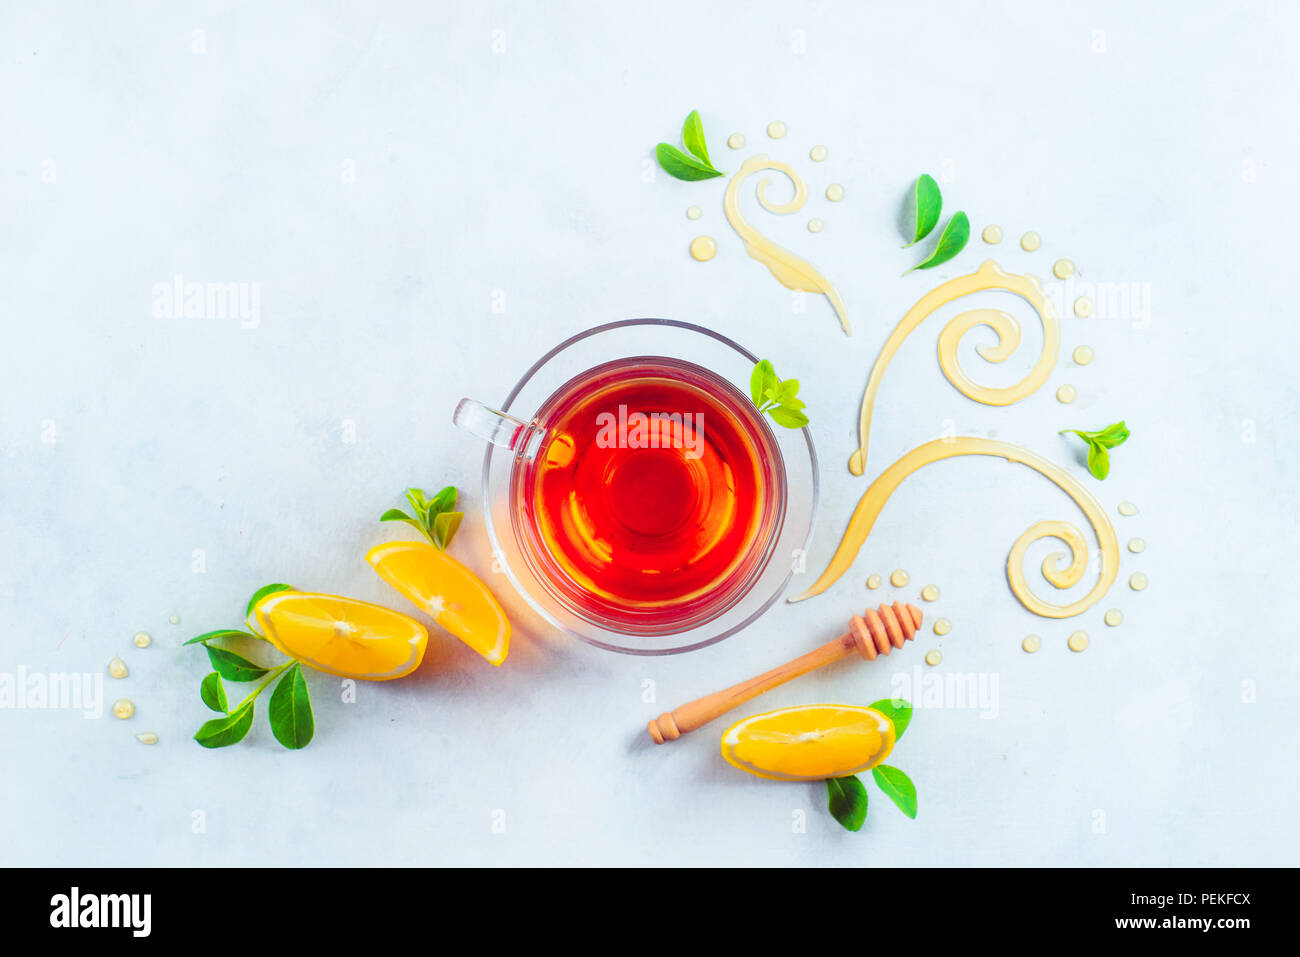 Glass cup of tea with decorative honey swirls, lemon slices and green leaves. Home remedies flat lay on a white background with copy space - Stock Image